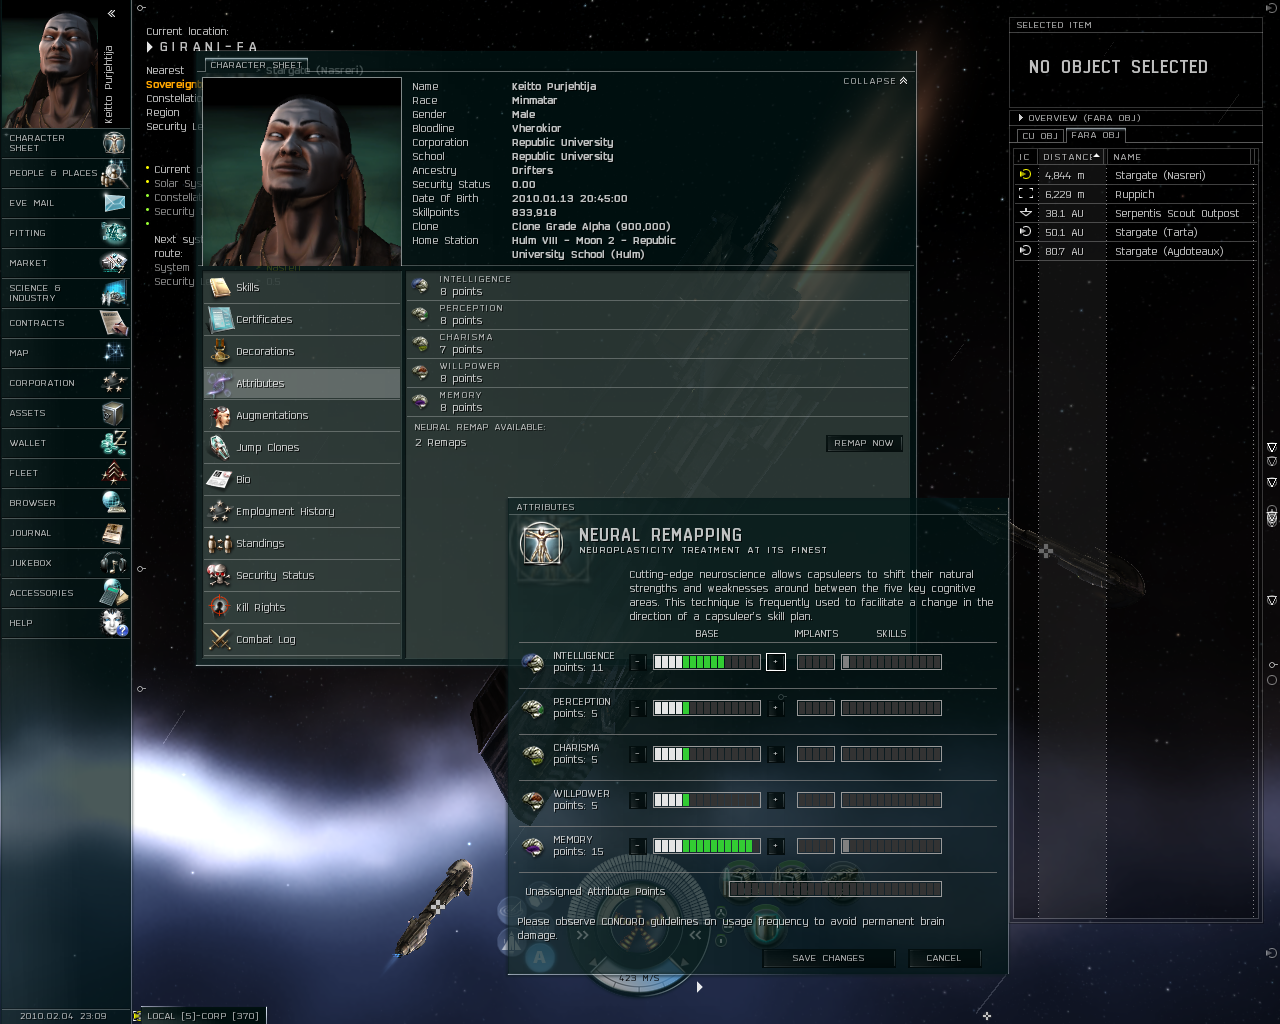 EVE Online Windows A neural remapping that will help me learn learning skills (after the 12th expansion, Dominion)